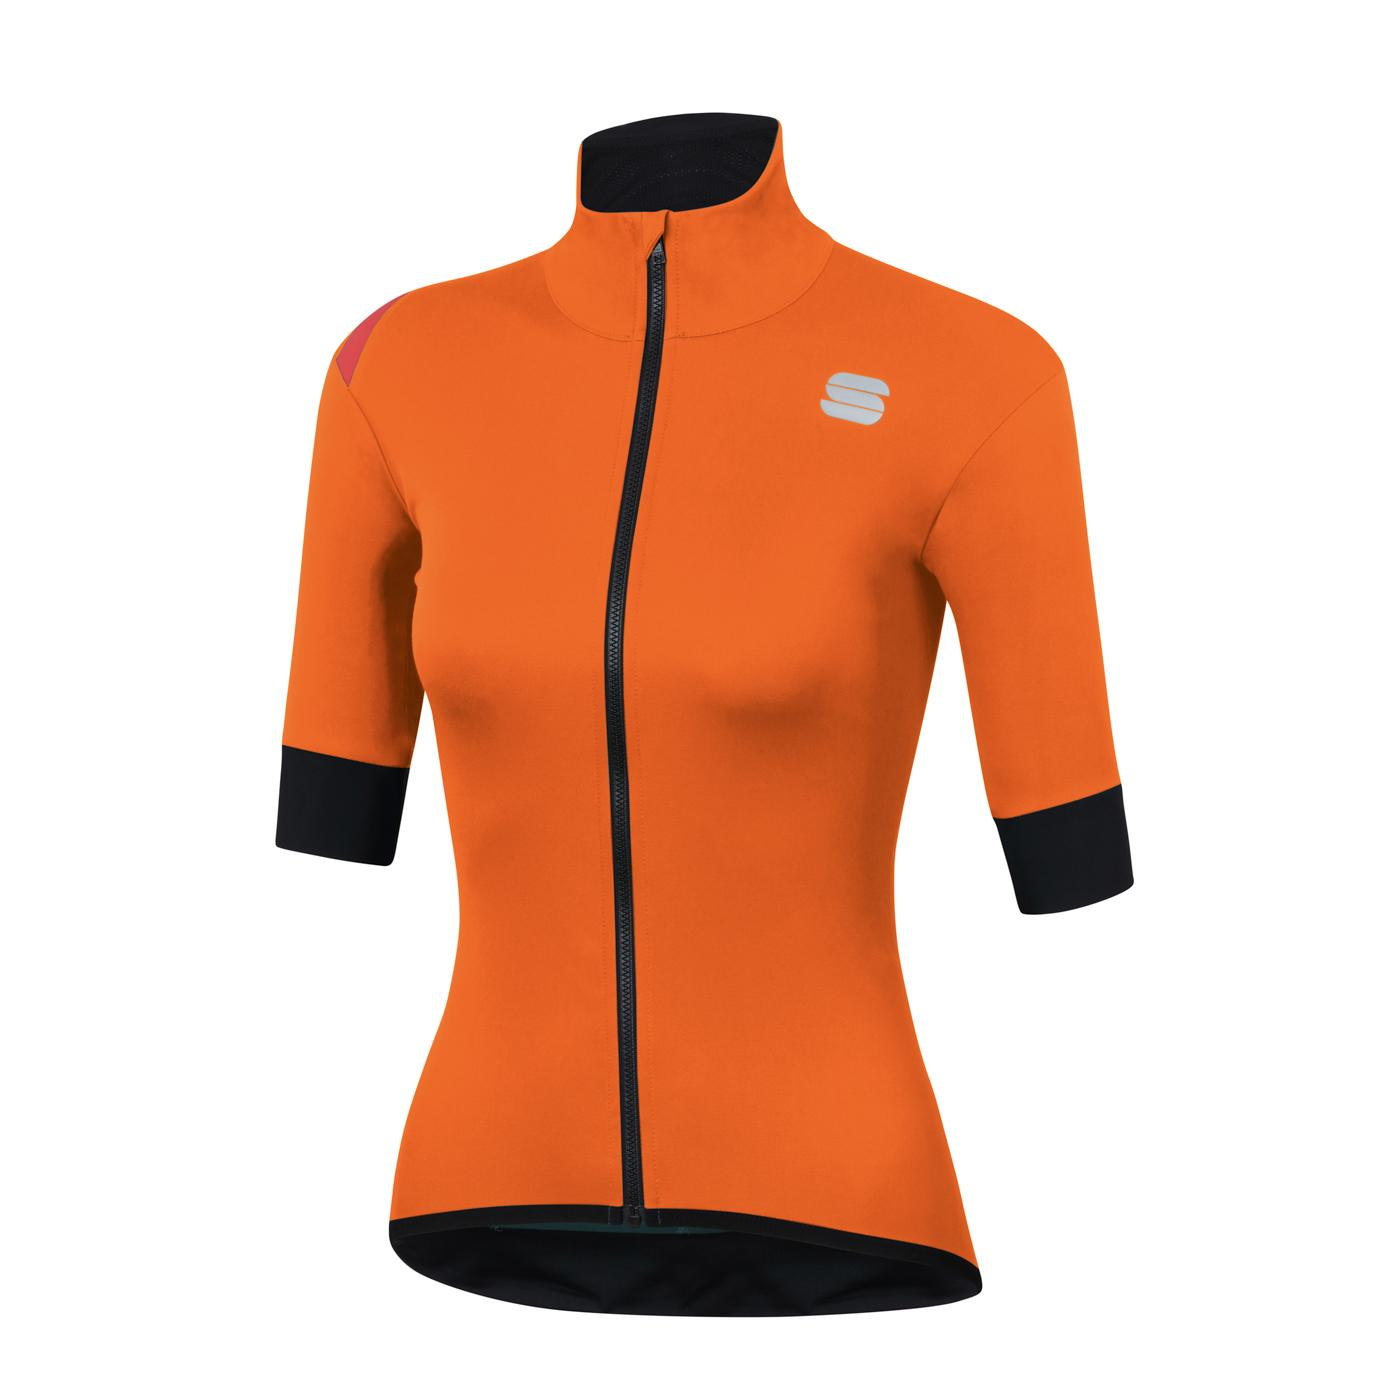 Sportful Fietsjack Lange mouwen voor Dames Oranje - SF Fiandre Light Norain W Jacket-Orange Sdr